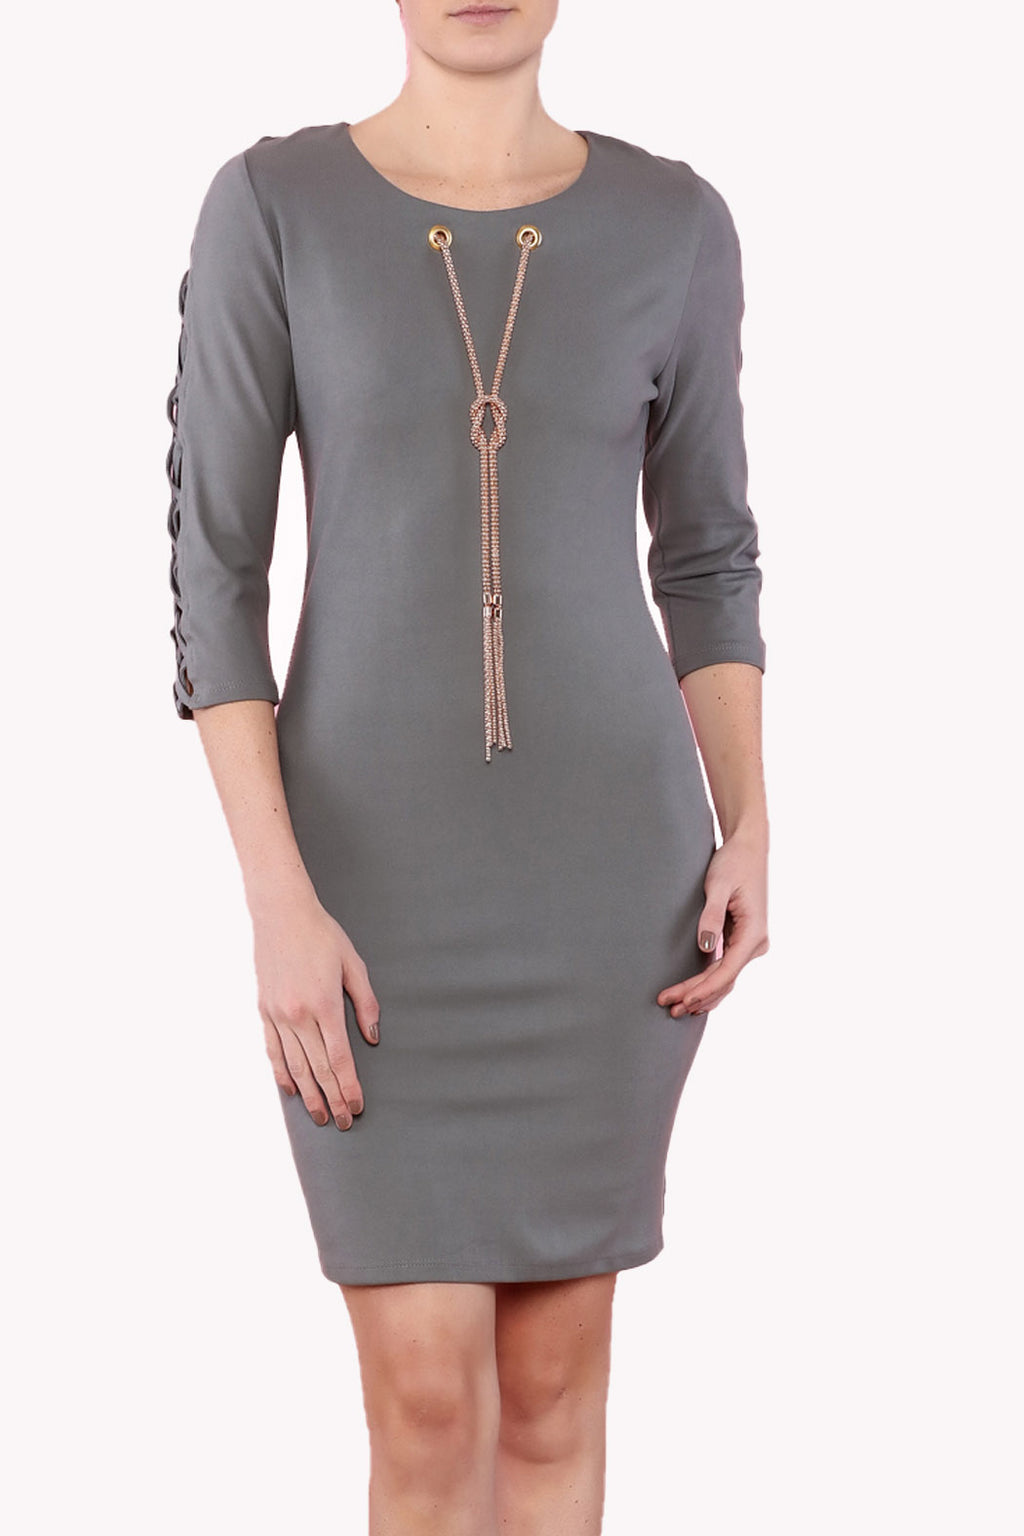 Gray Fitted dress, night out dress